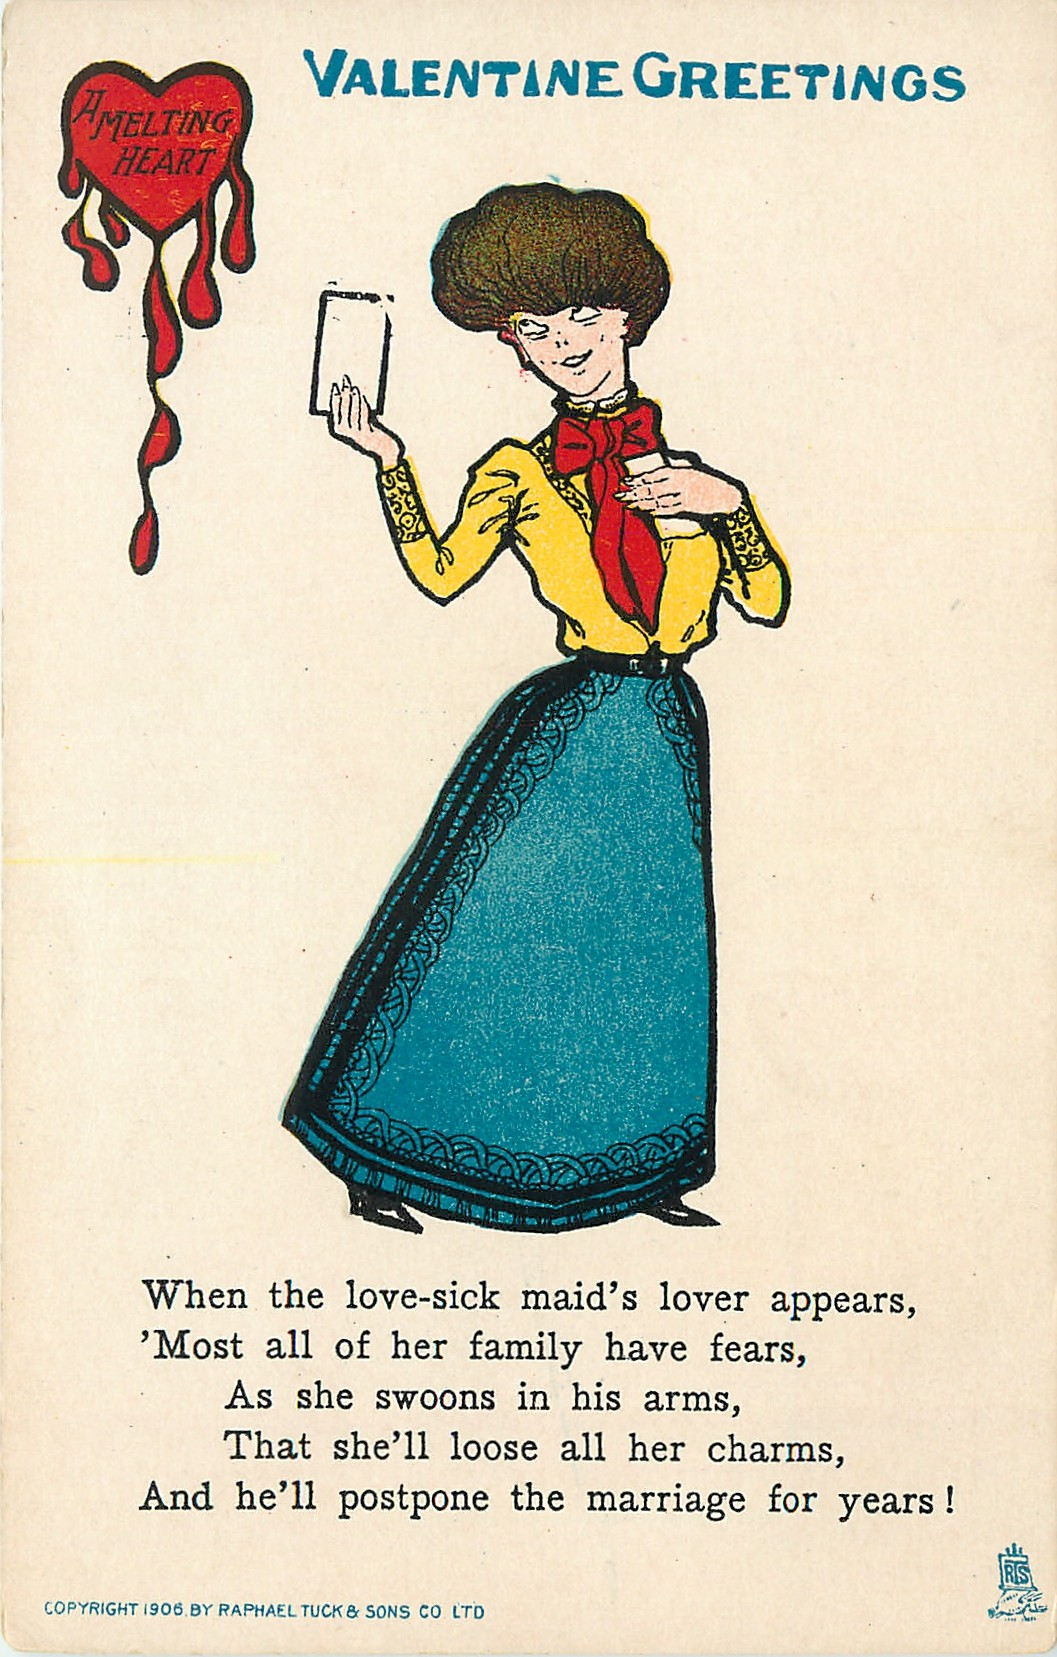 WHEN THE LOVE-SICK MAID'S LOVER APPEARS, 'MOST ALL OF HER ...